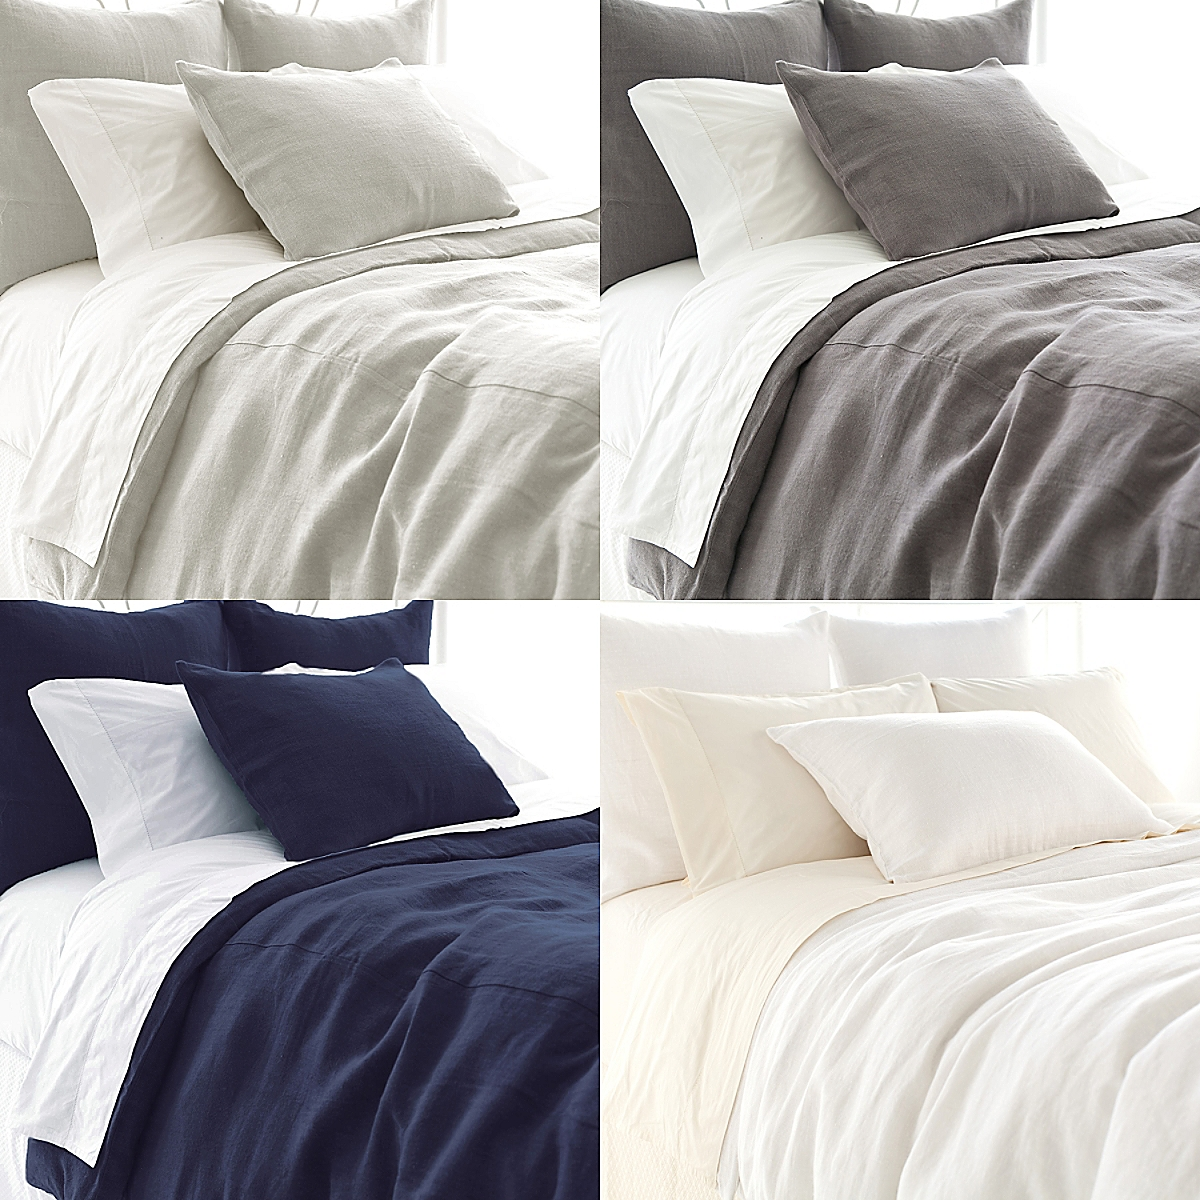 Stone Washed Linen Duvet Cover and Sham